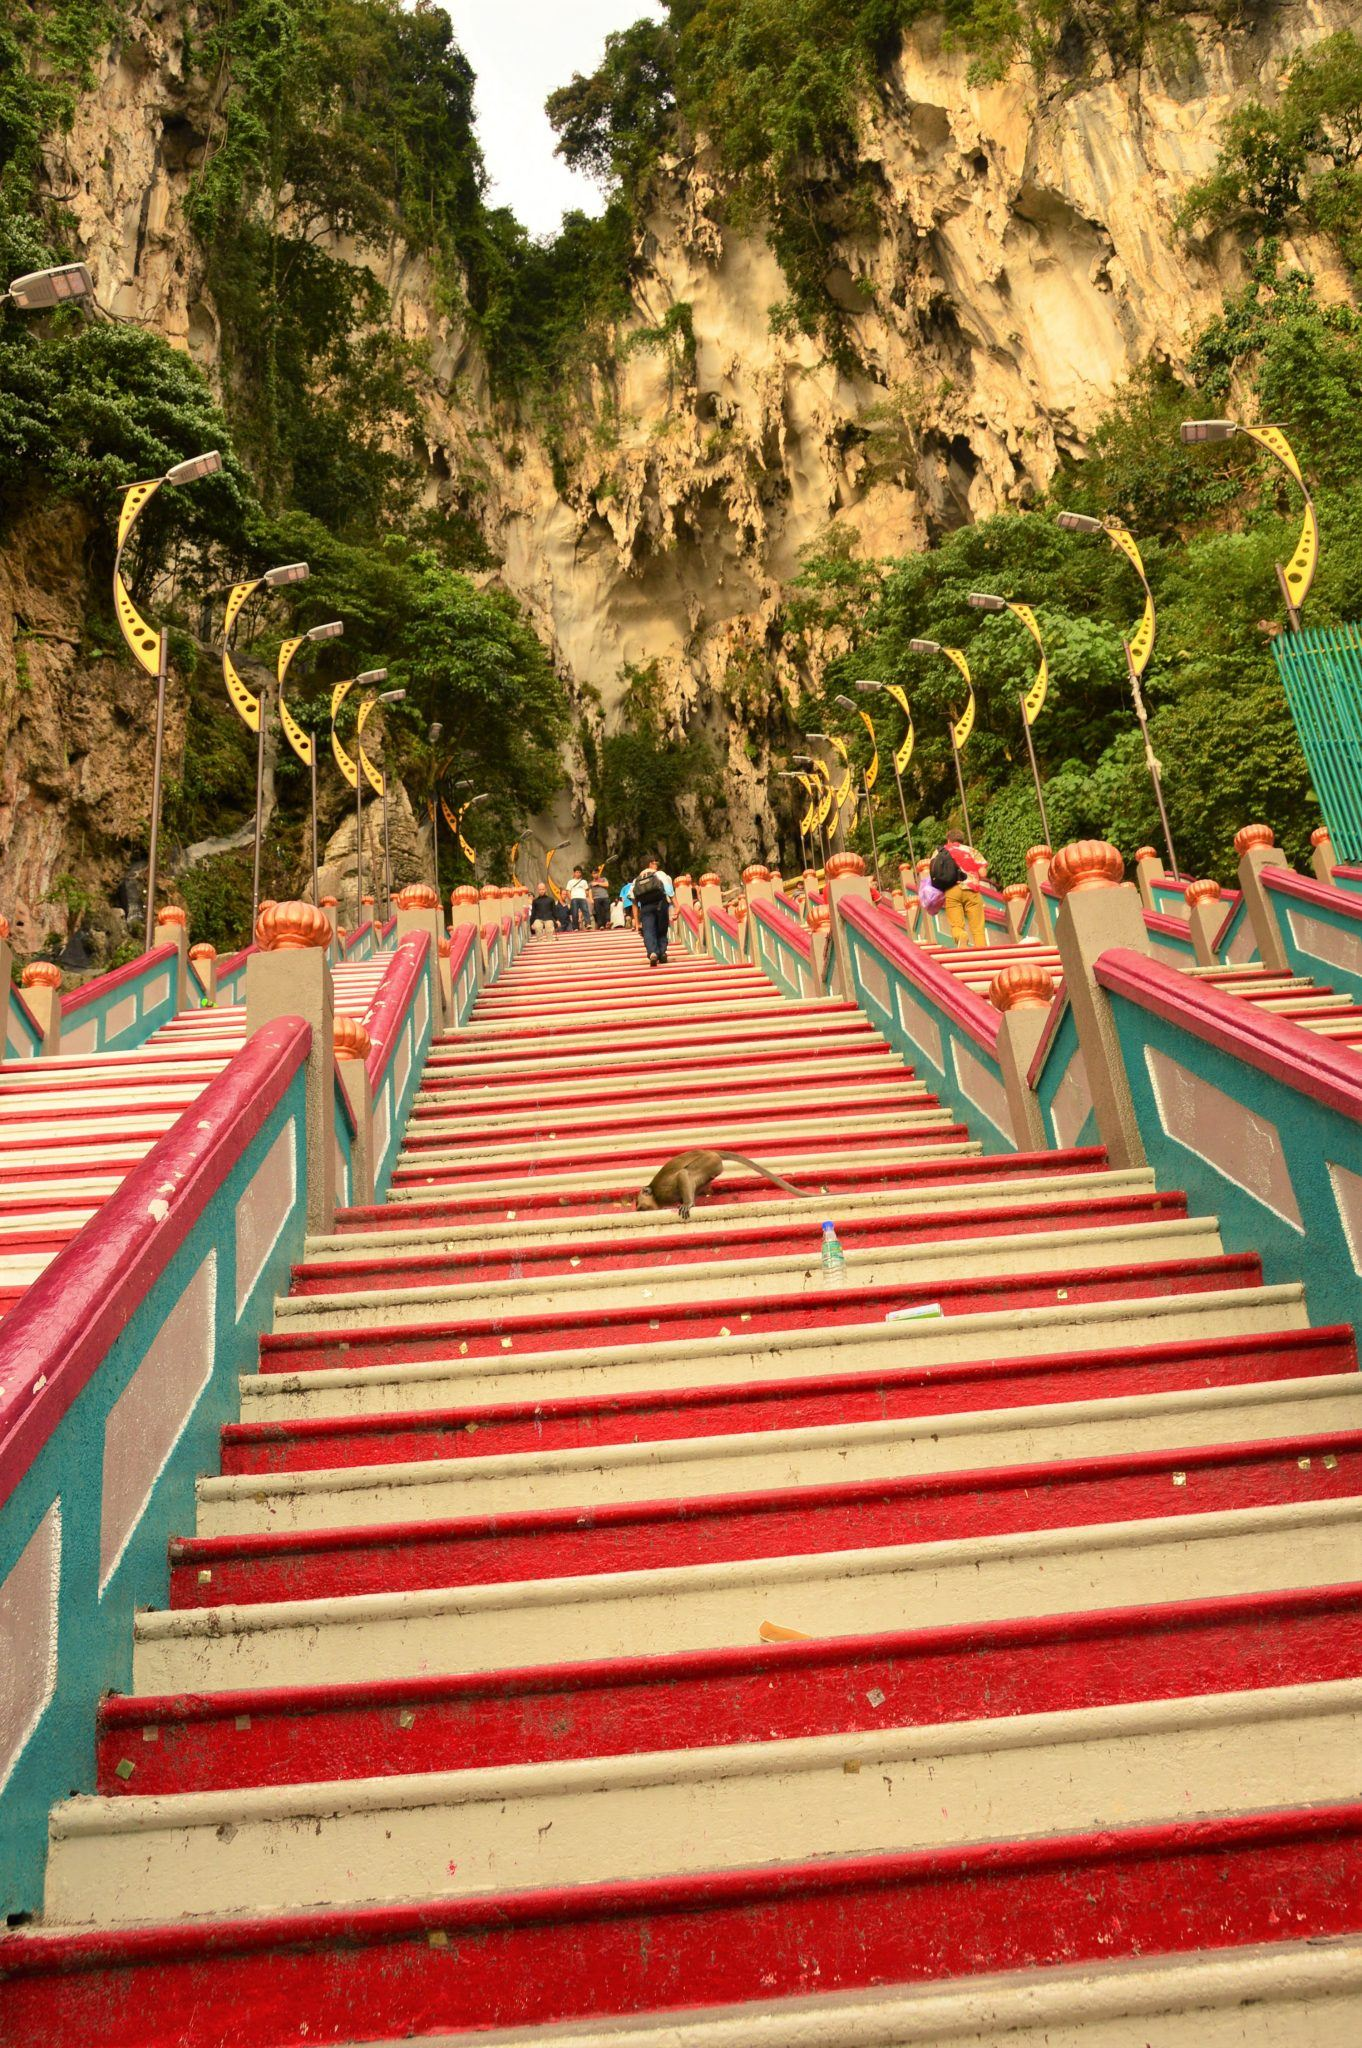 The long stairs heading up to Batu Caves